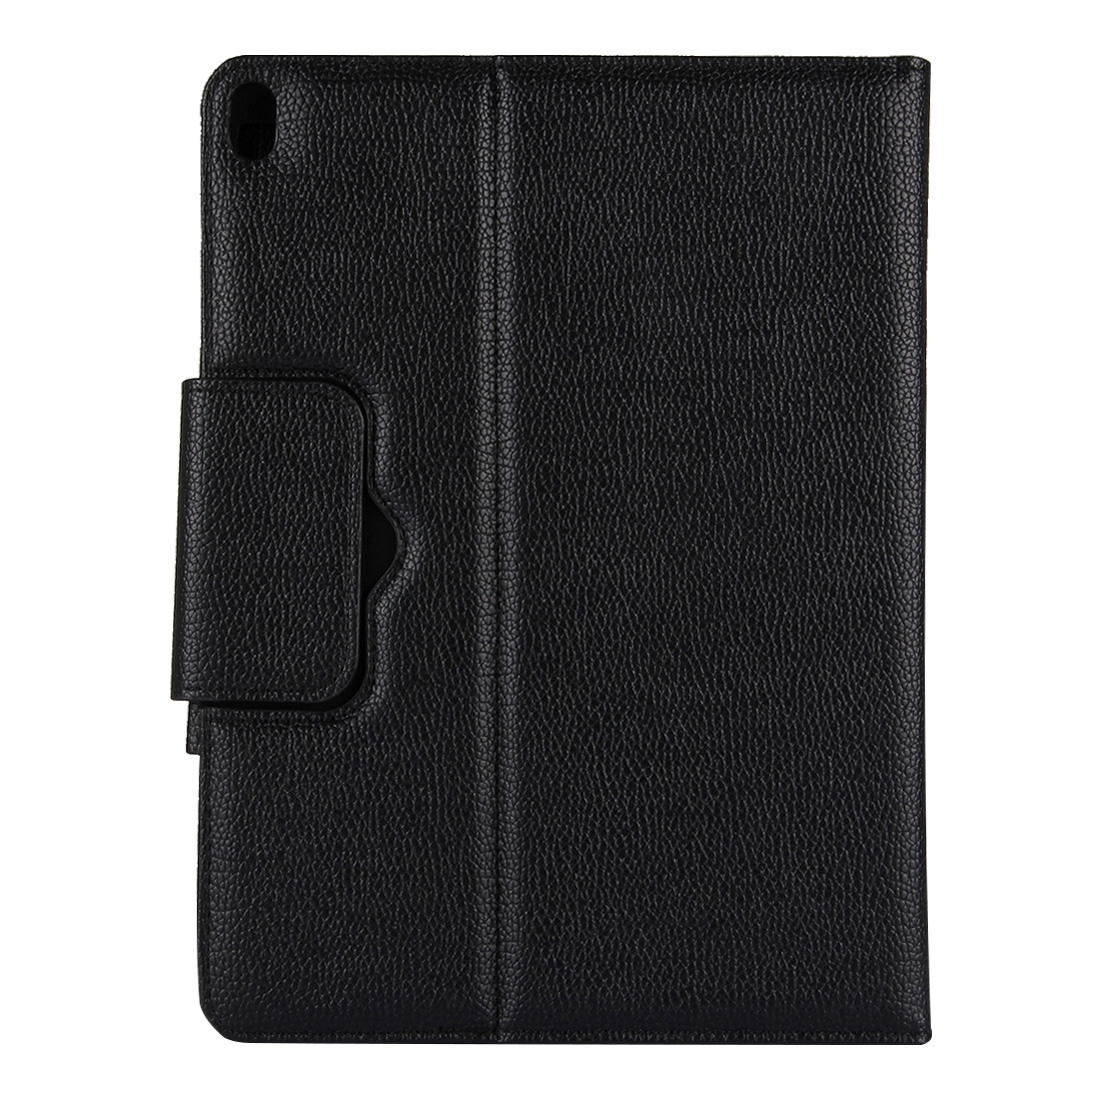 iPad Pro 12.9 Case With Keyboard (2018) With Leather Case & Detachable Keyboard (Black)